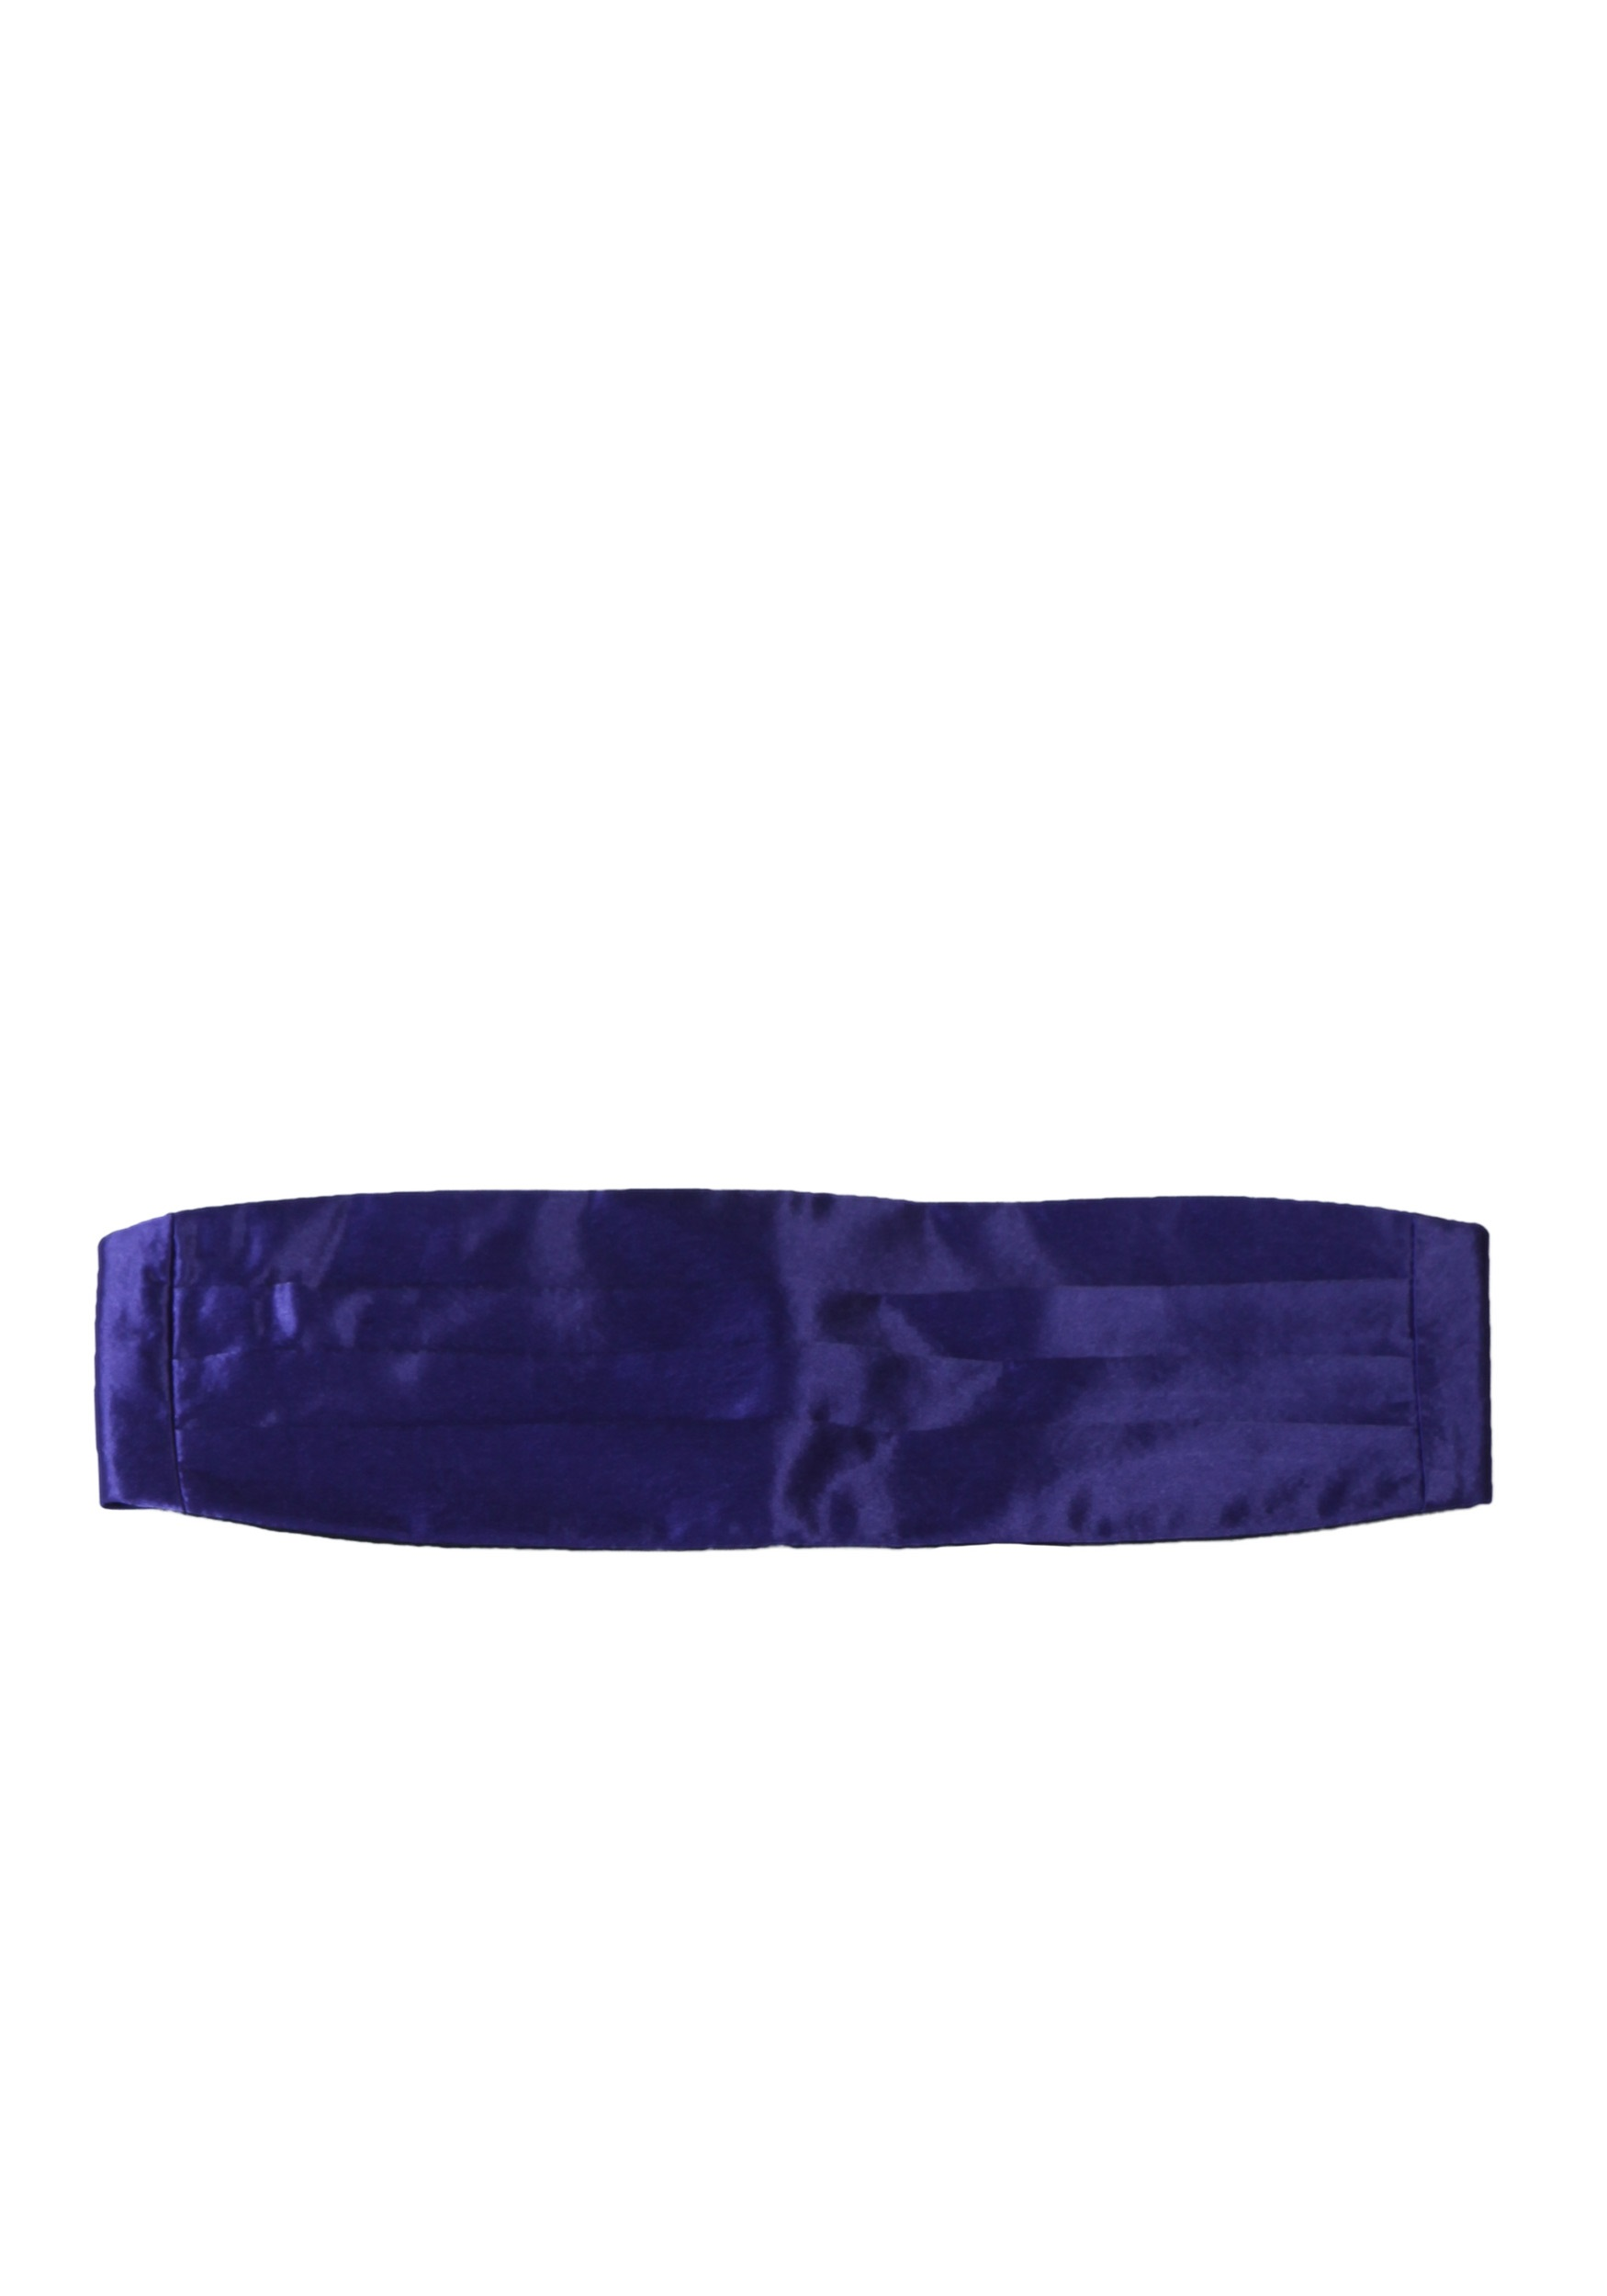 Purple_Cummerbund